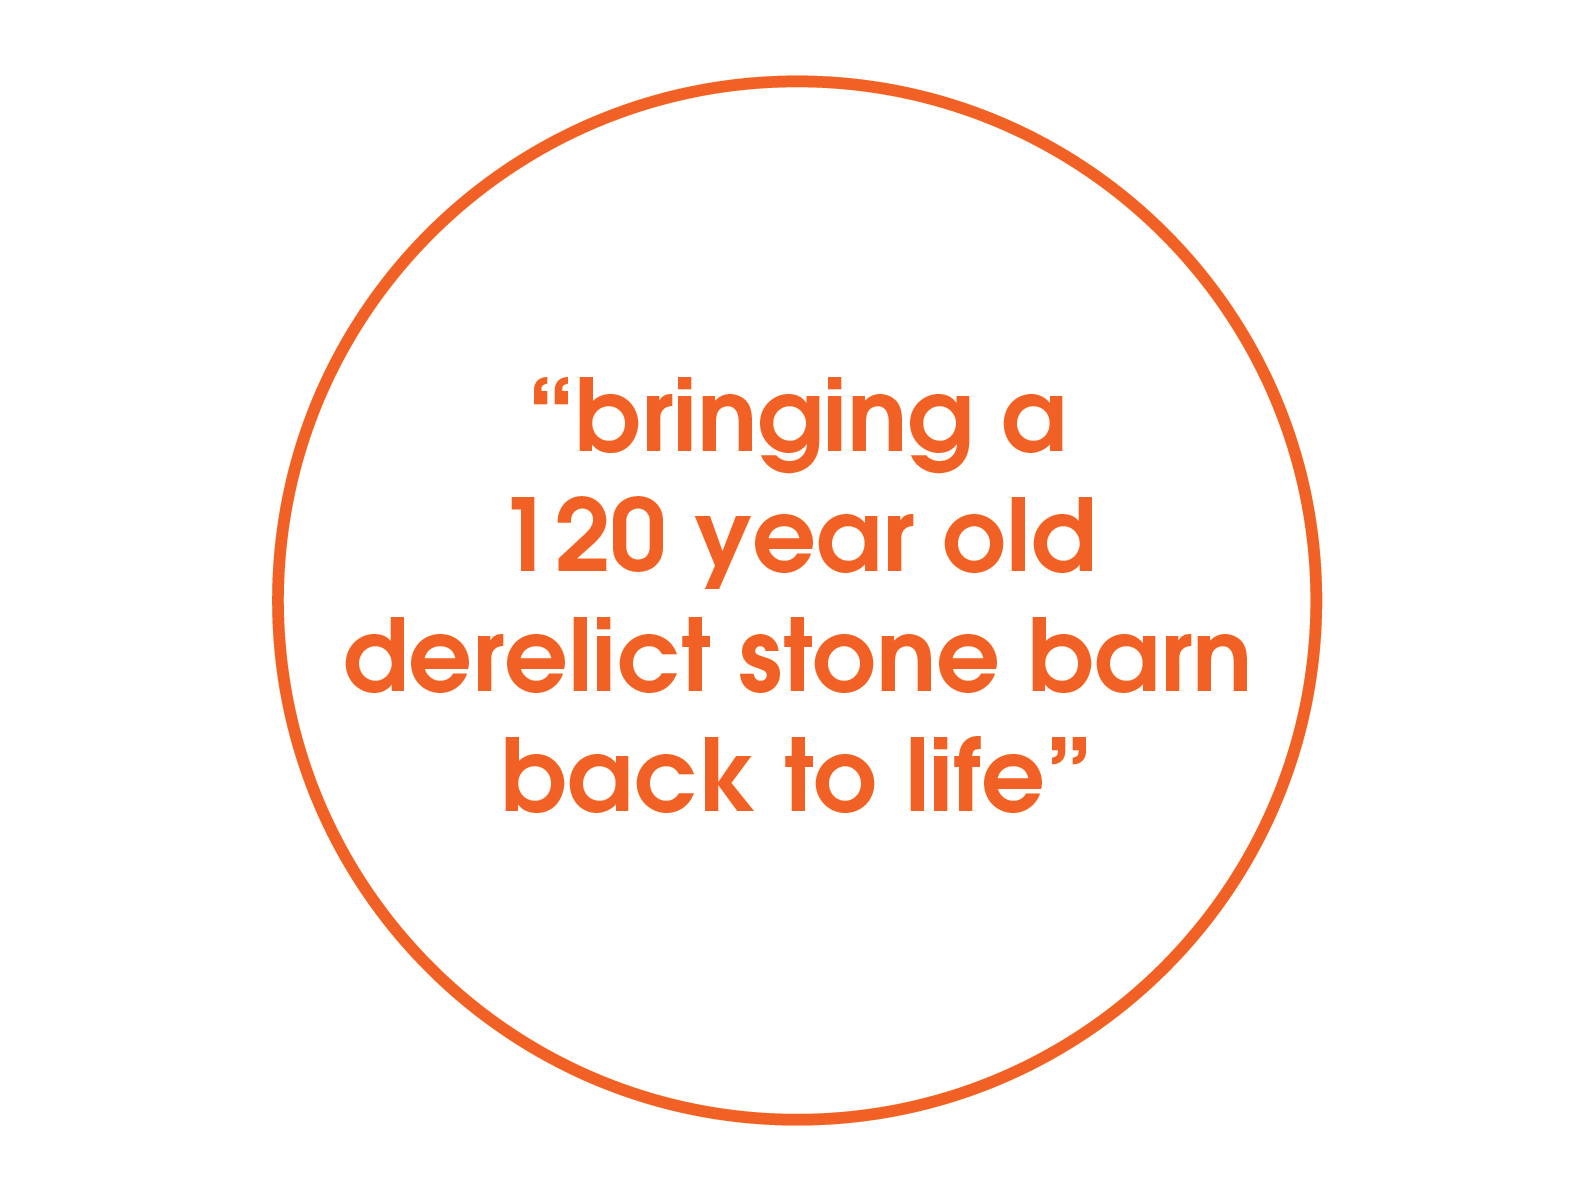 bringing stone barn back to life quote